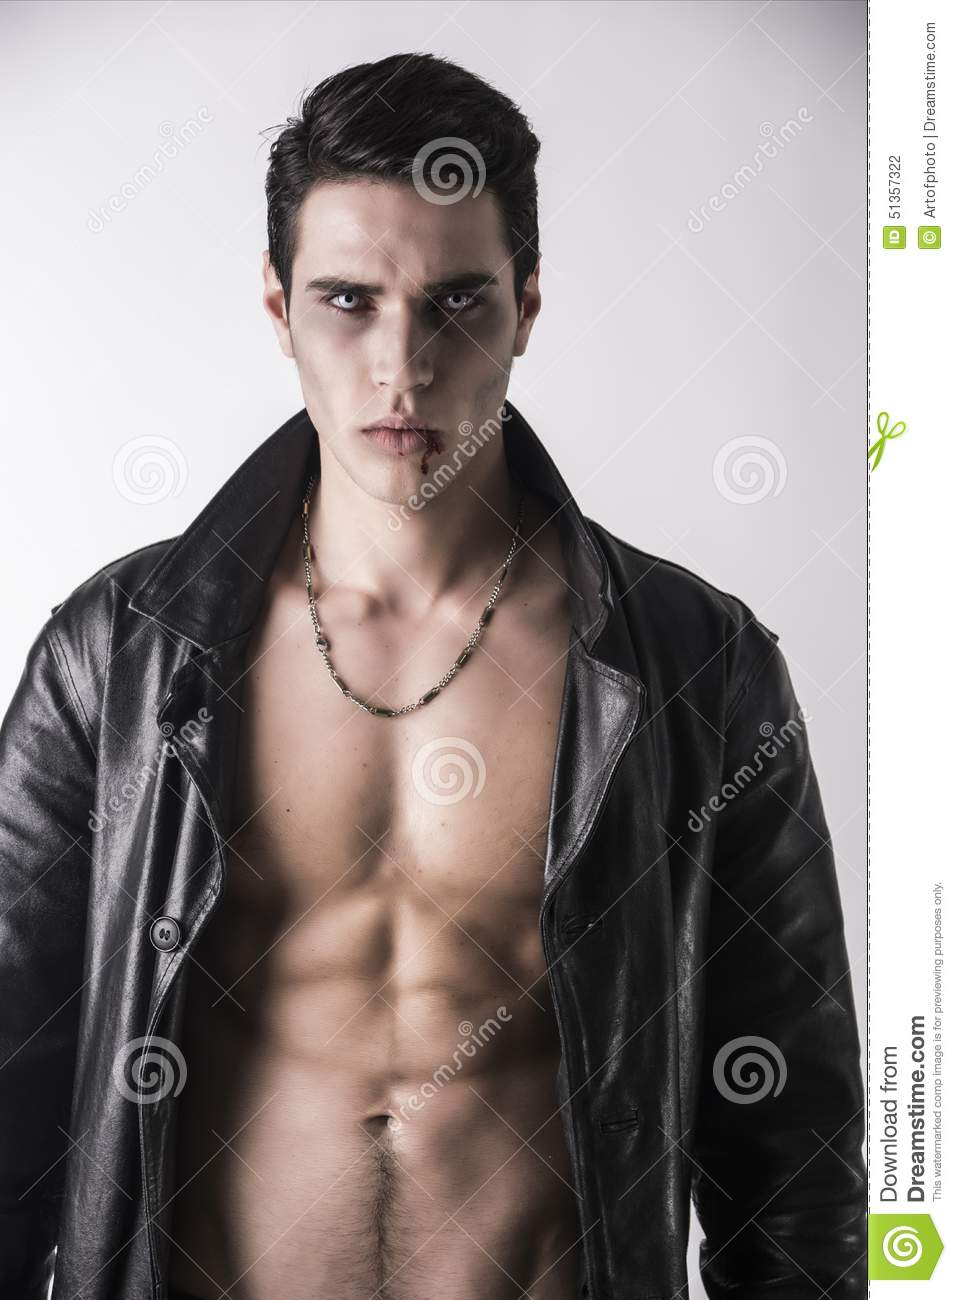 Young Vampire Man In An Open Black Leather Jacket Stock